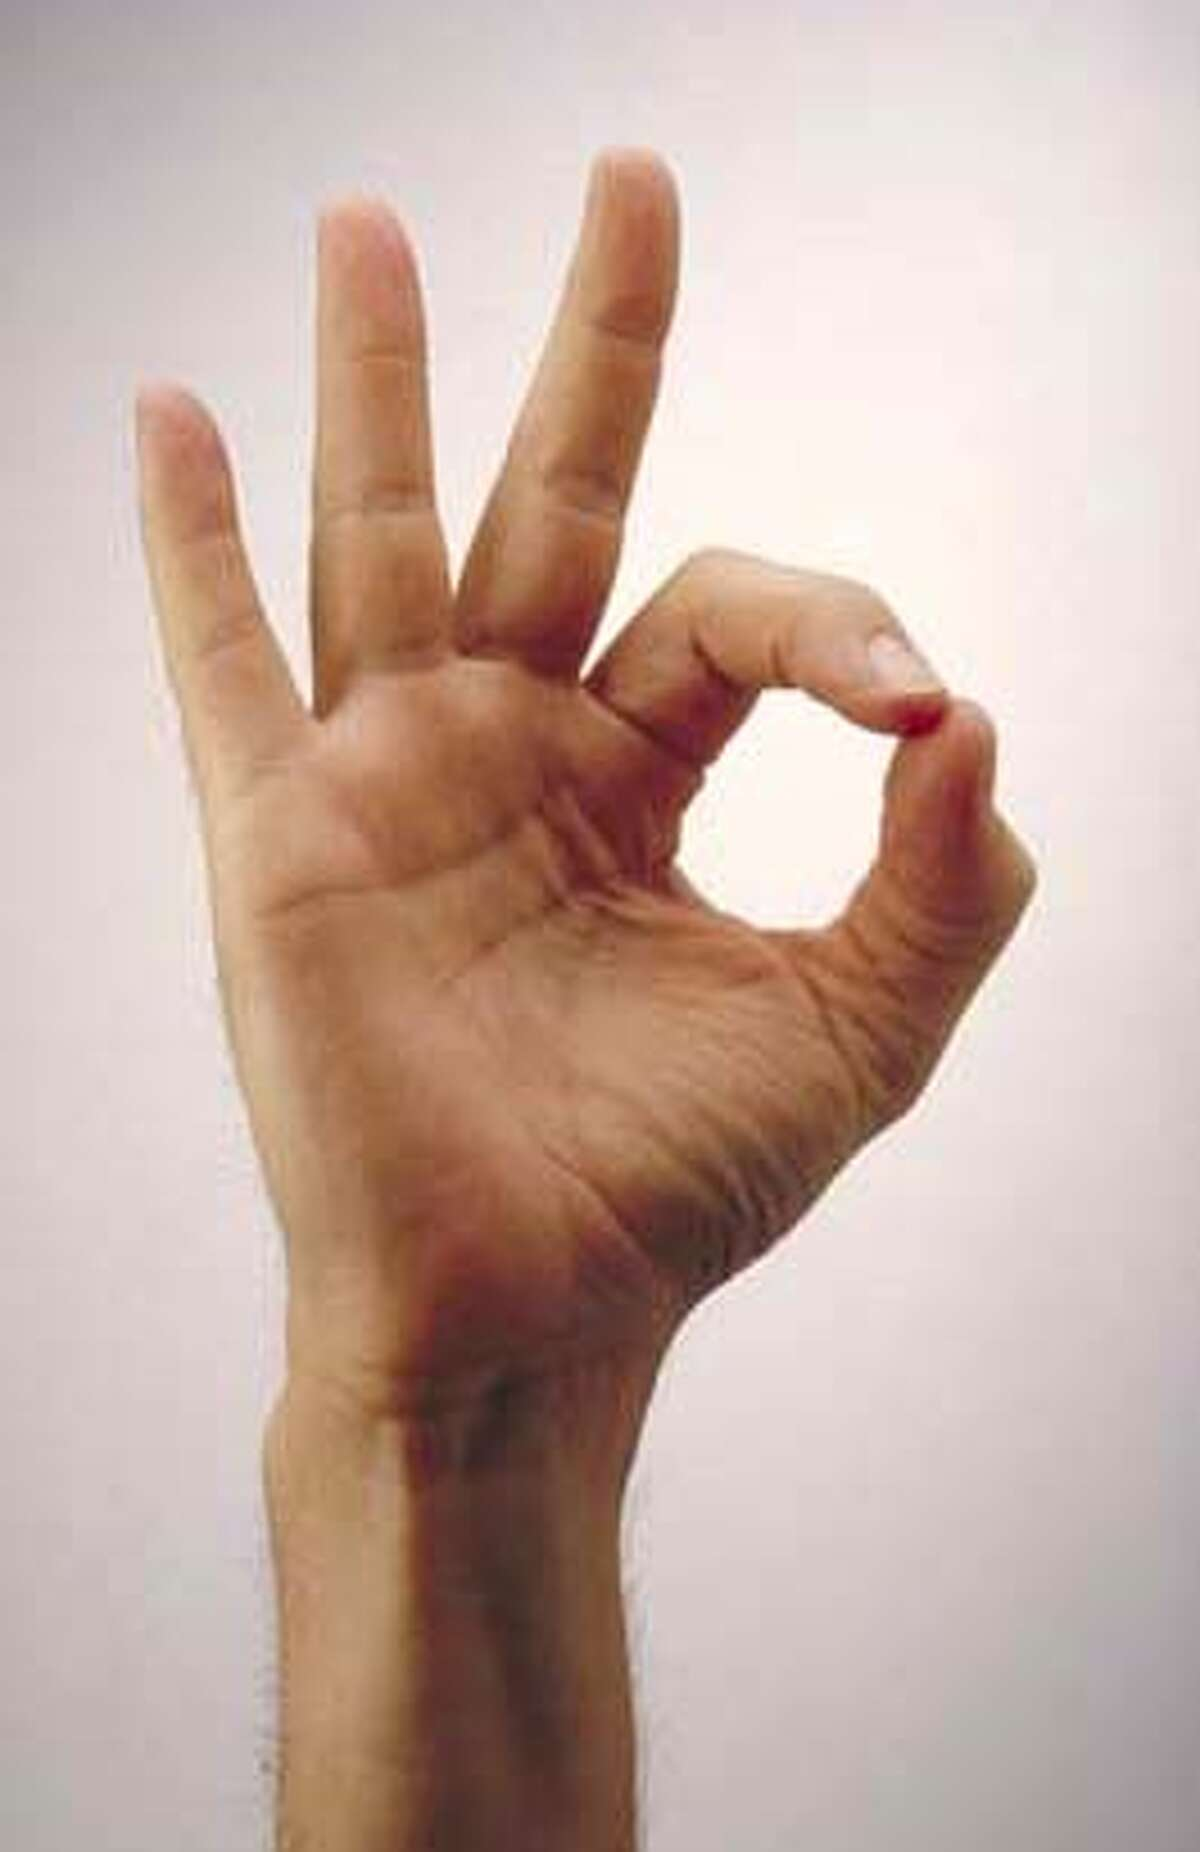 Hand sign proposed to indicate solidarity with Gobal Orgasm for Peace movement,